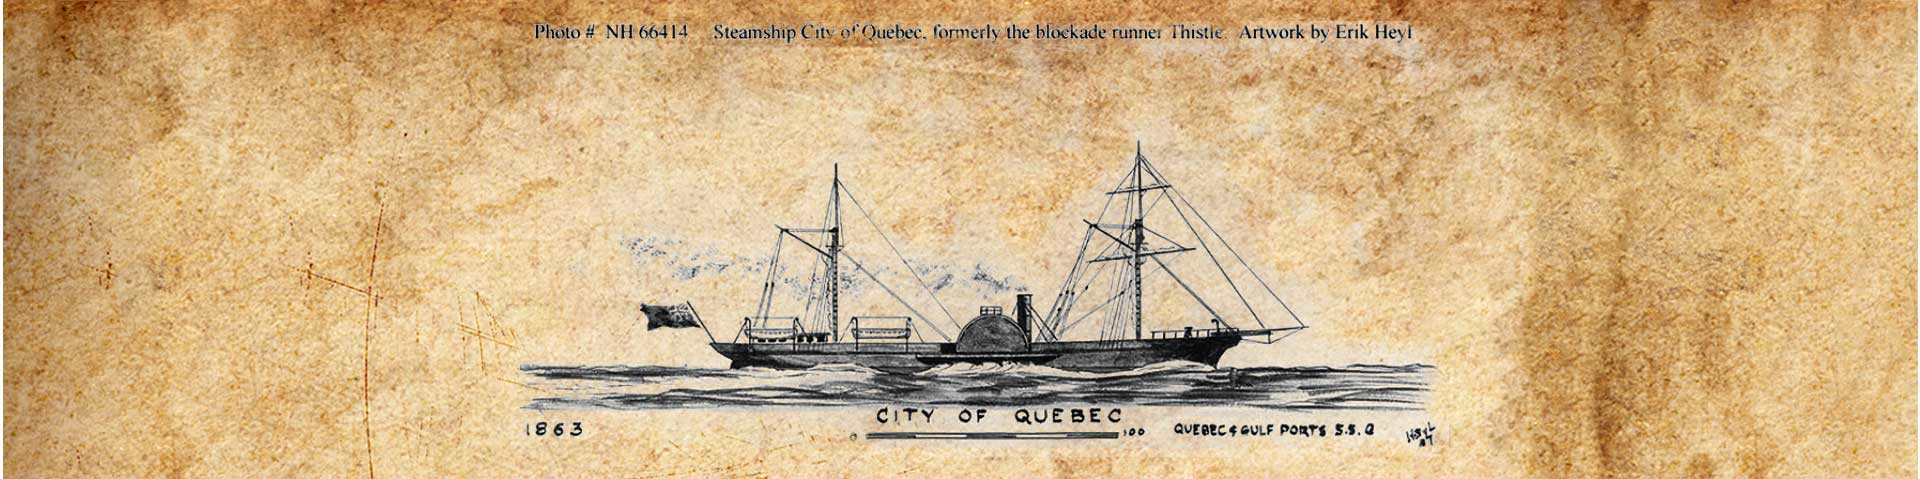 city-of-qc-img-top